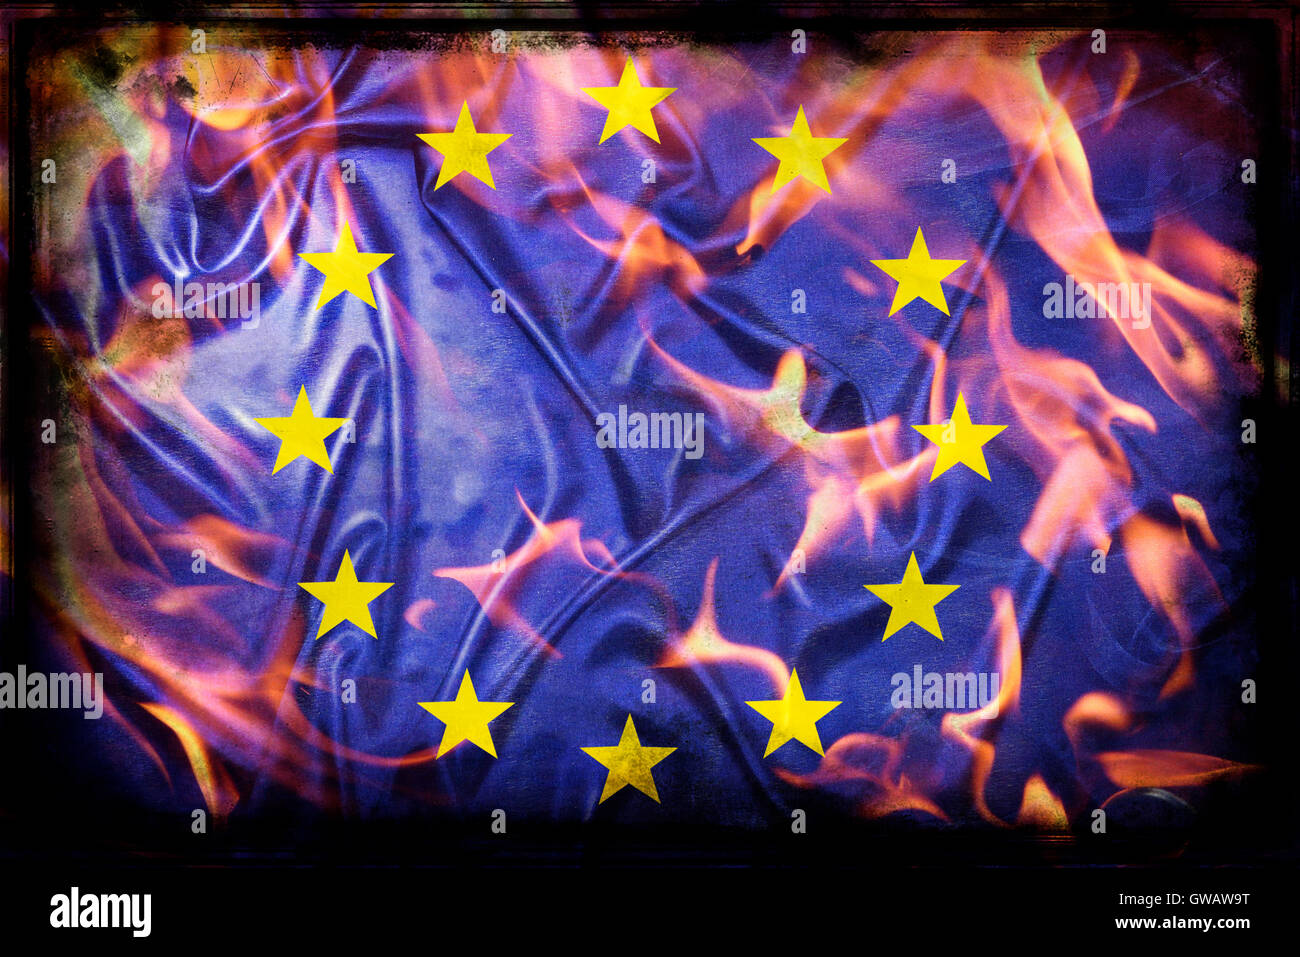 European flag in flames, symbolic photo Europe after the Brexit vote, Europa-Fahne in Flammen, Symbolfoto Europa - Stock Image